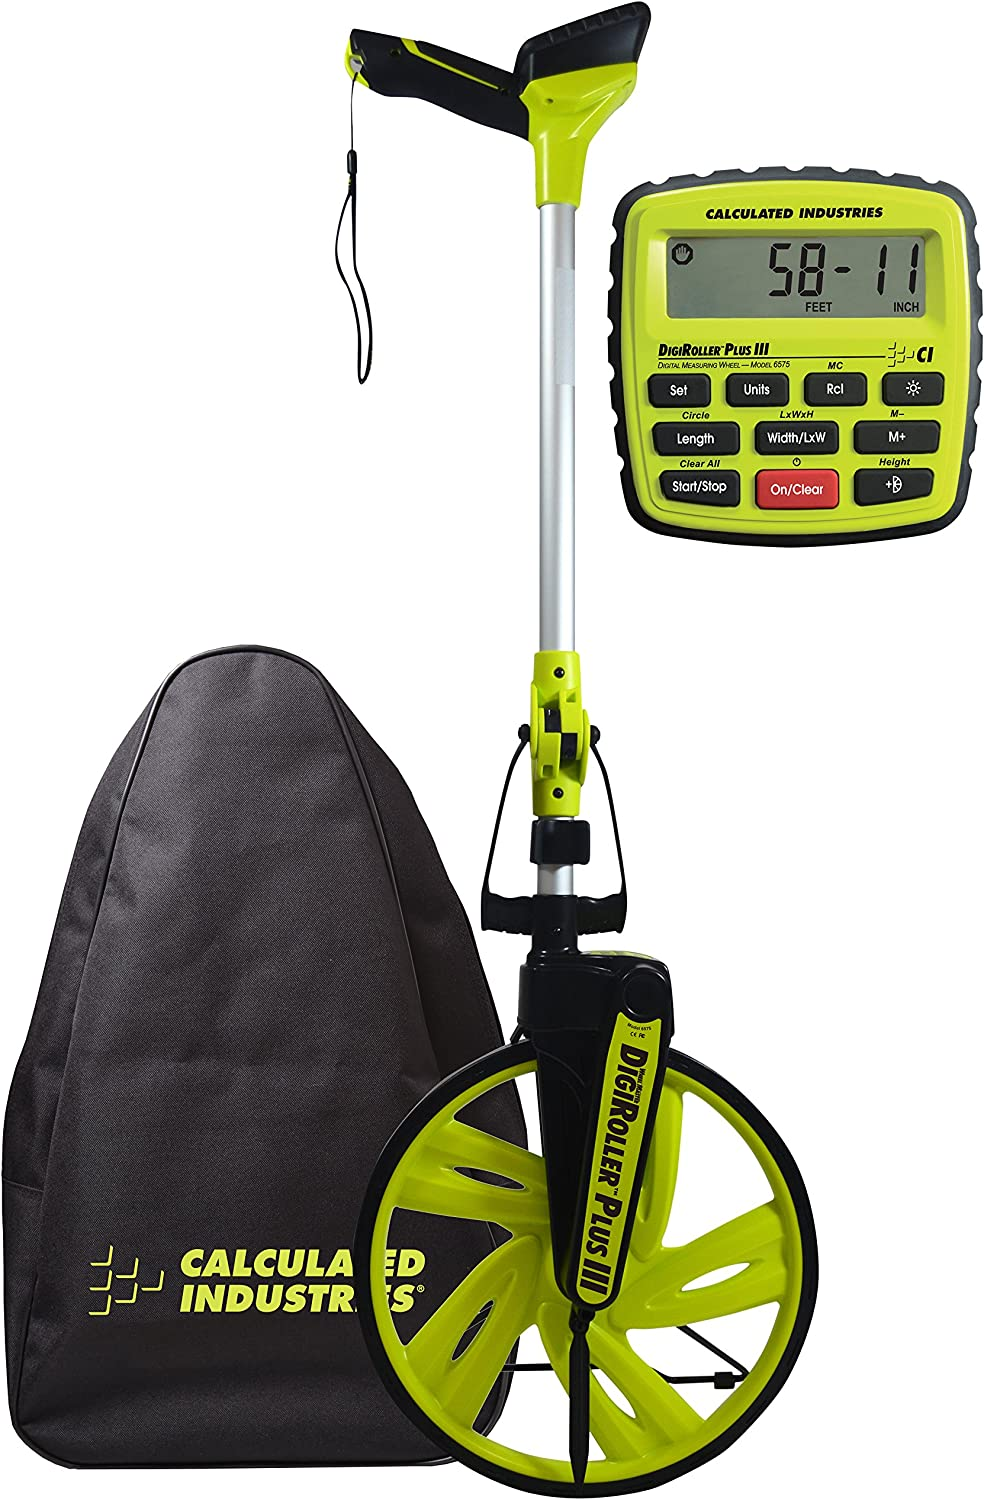 Calculated Industries #6575 DigiRoller Plus III 12.5 Inch Estimators Electronic Distance Measuring Wheel with Large Backlit Digital Display; Measure in Feet.